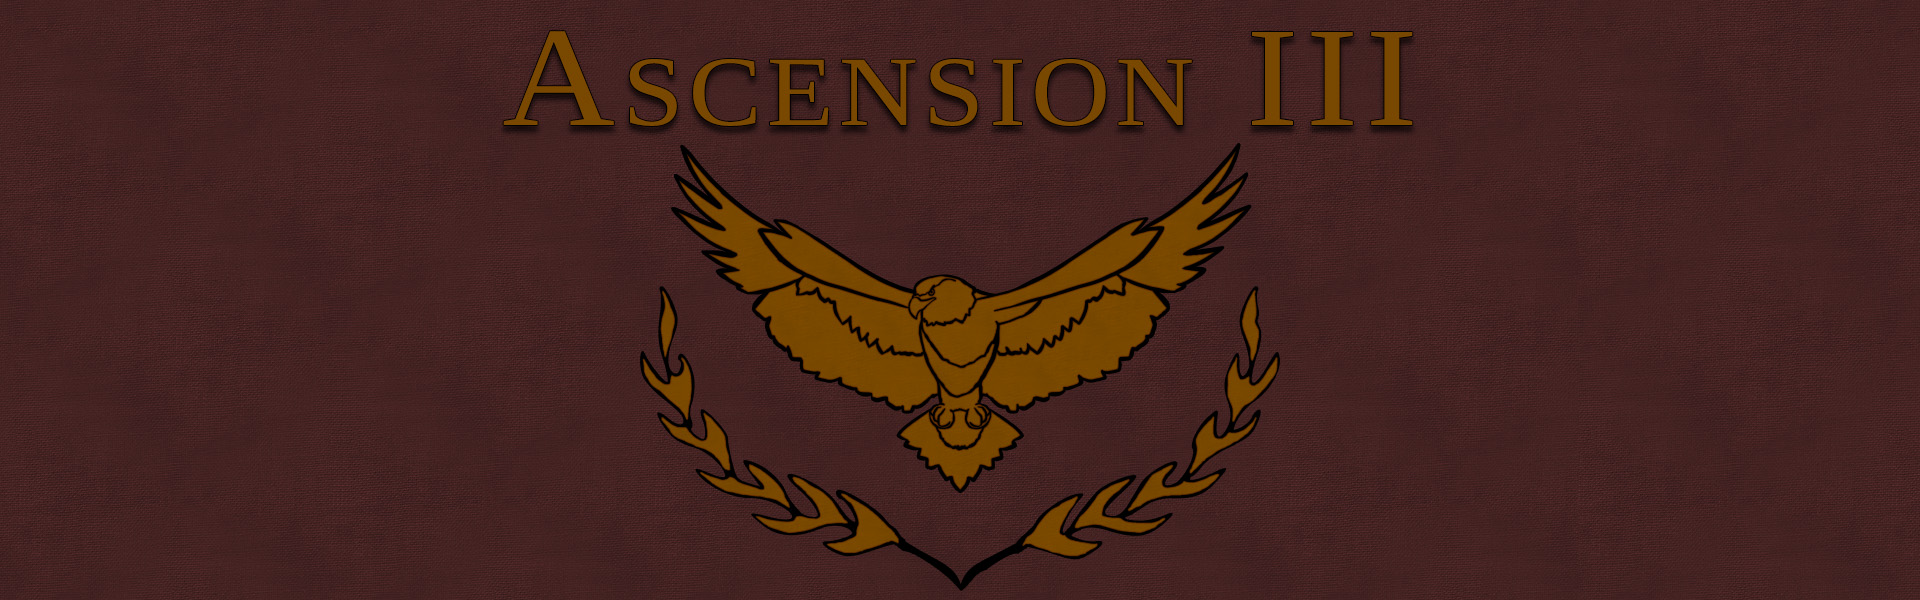 Ascension III